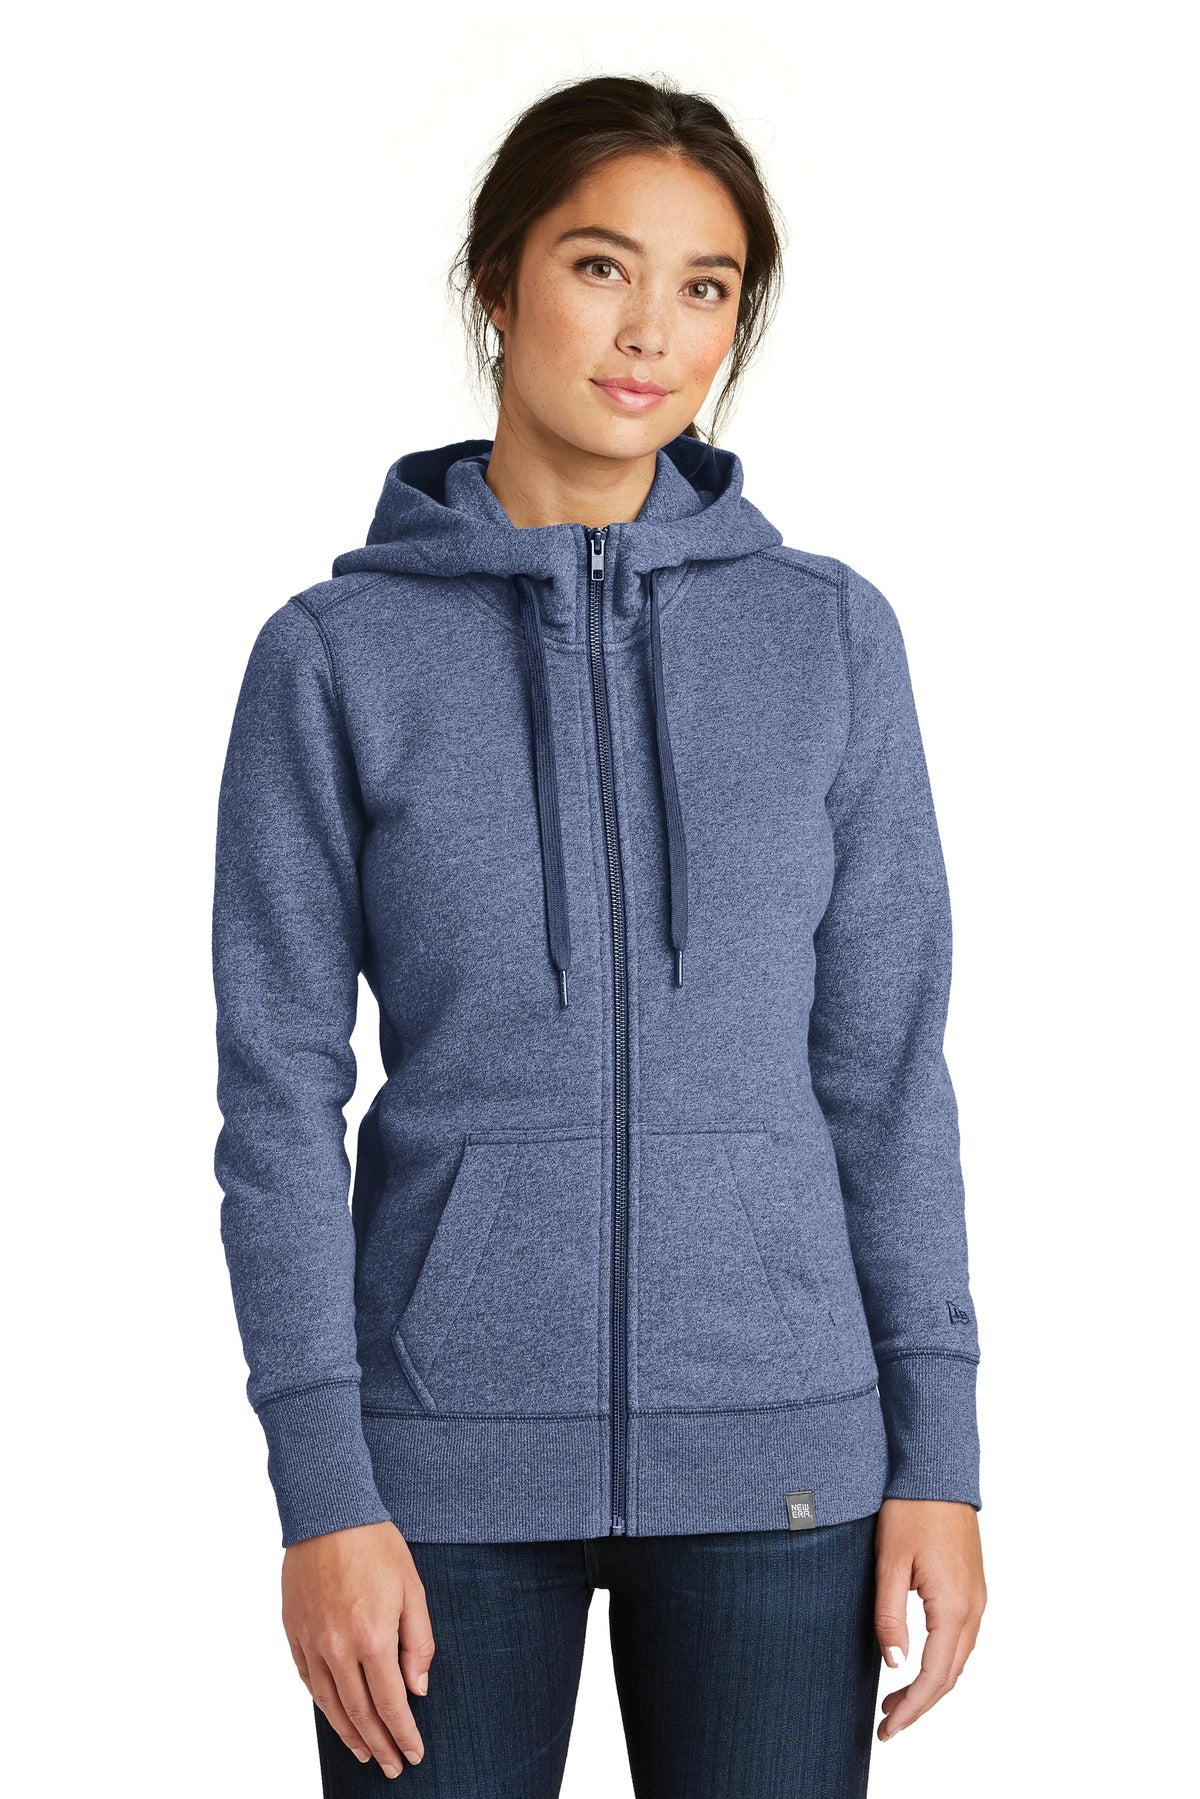 New Era ® Ladies French Terry Full-Zip Hoodie. LNEA502 - Aspire Zone